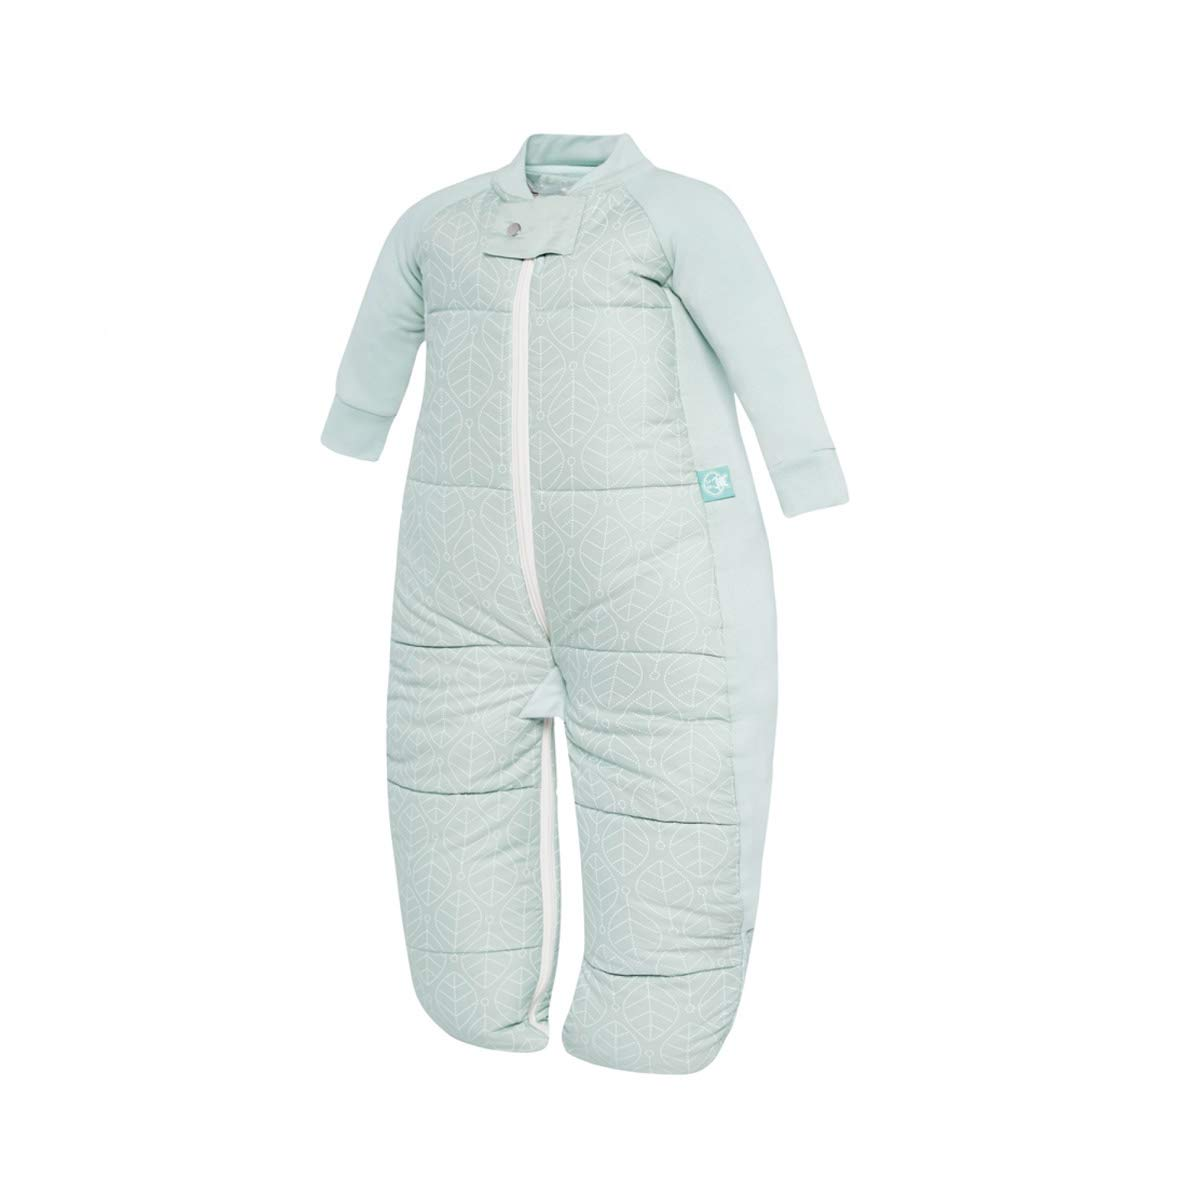 ergoPouch 3.5 TOG Sleep Suit Bag 100% Organic Cotton Filling with Cotton Sleeves and fold Over Mitts. 2 in 1 Wearable Blanket Sleeping Bag converts to Sleep Suit with Legs (Mint Leaves, 2-4 Years)